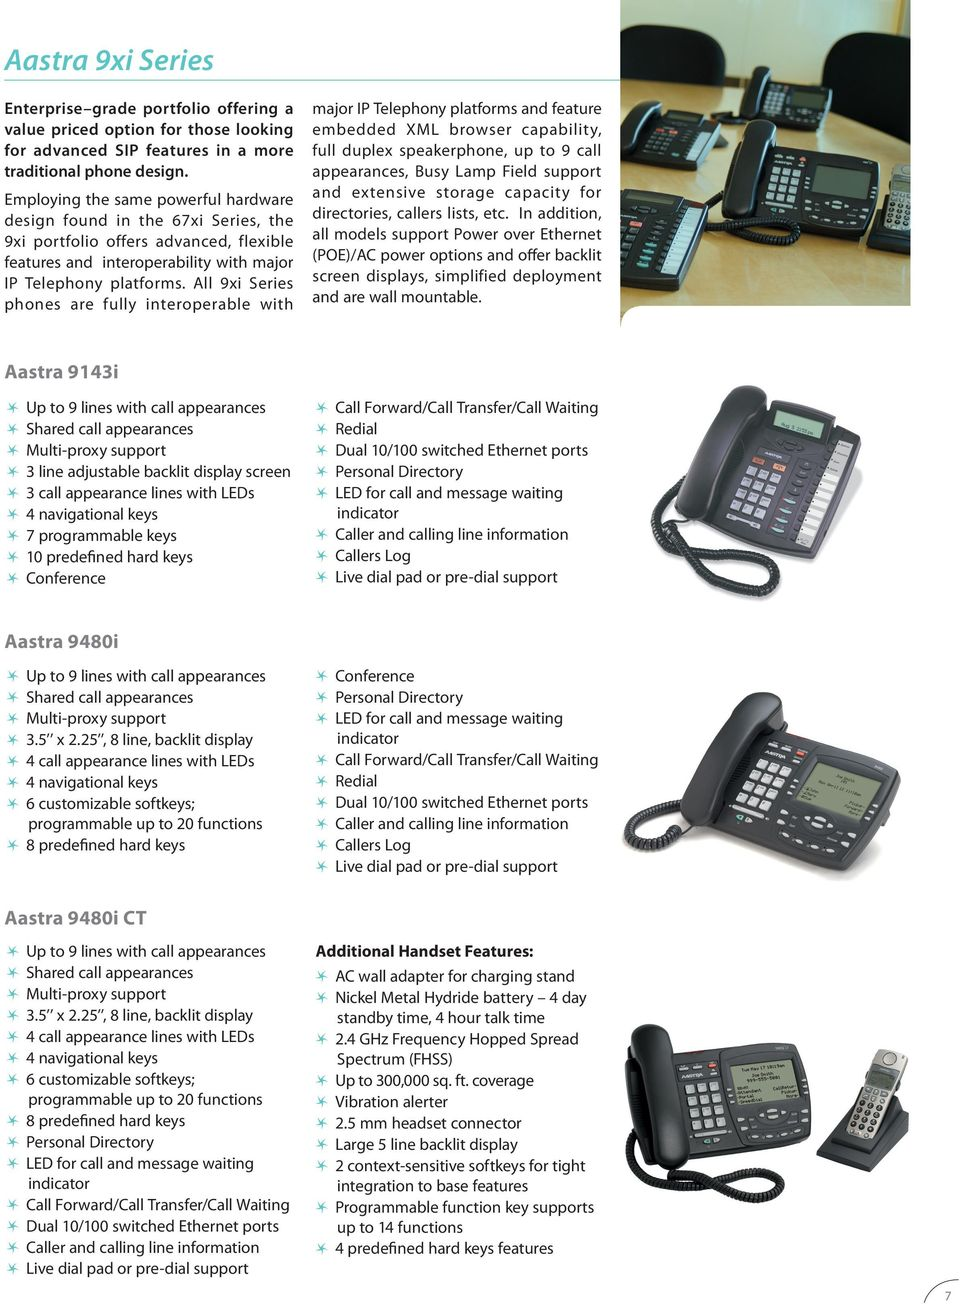 All 9xi Series phones are fully interoperable with major IP Telephony platforms and feature embedded XML browser capability, full duplex speakerphone, up to 9 call, Busy Lamp Field support and